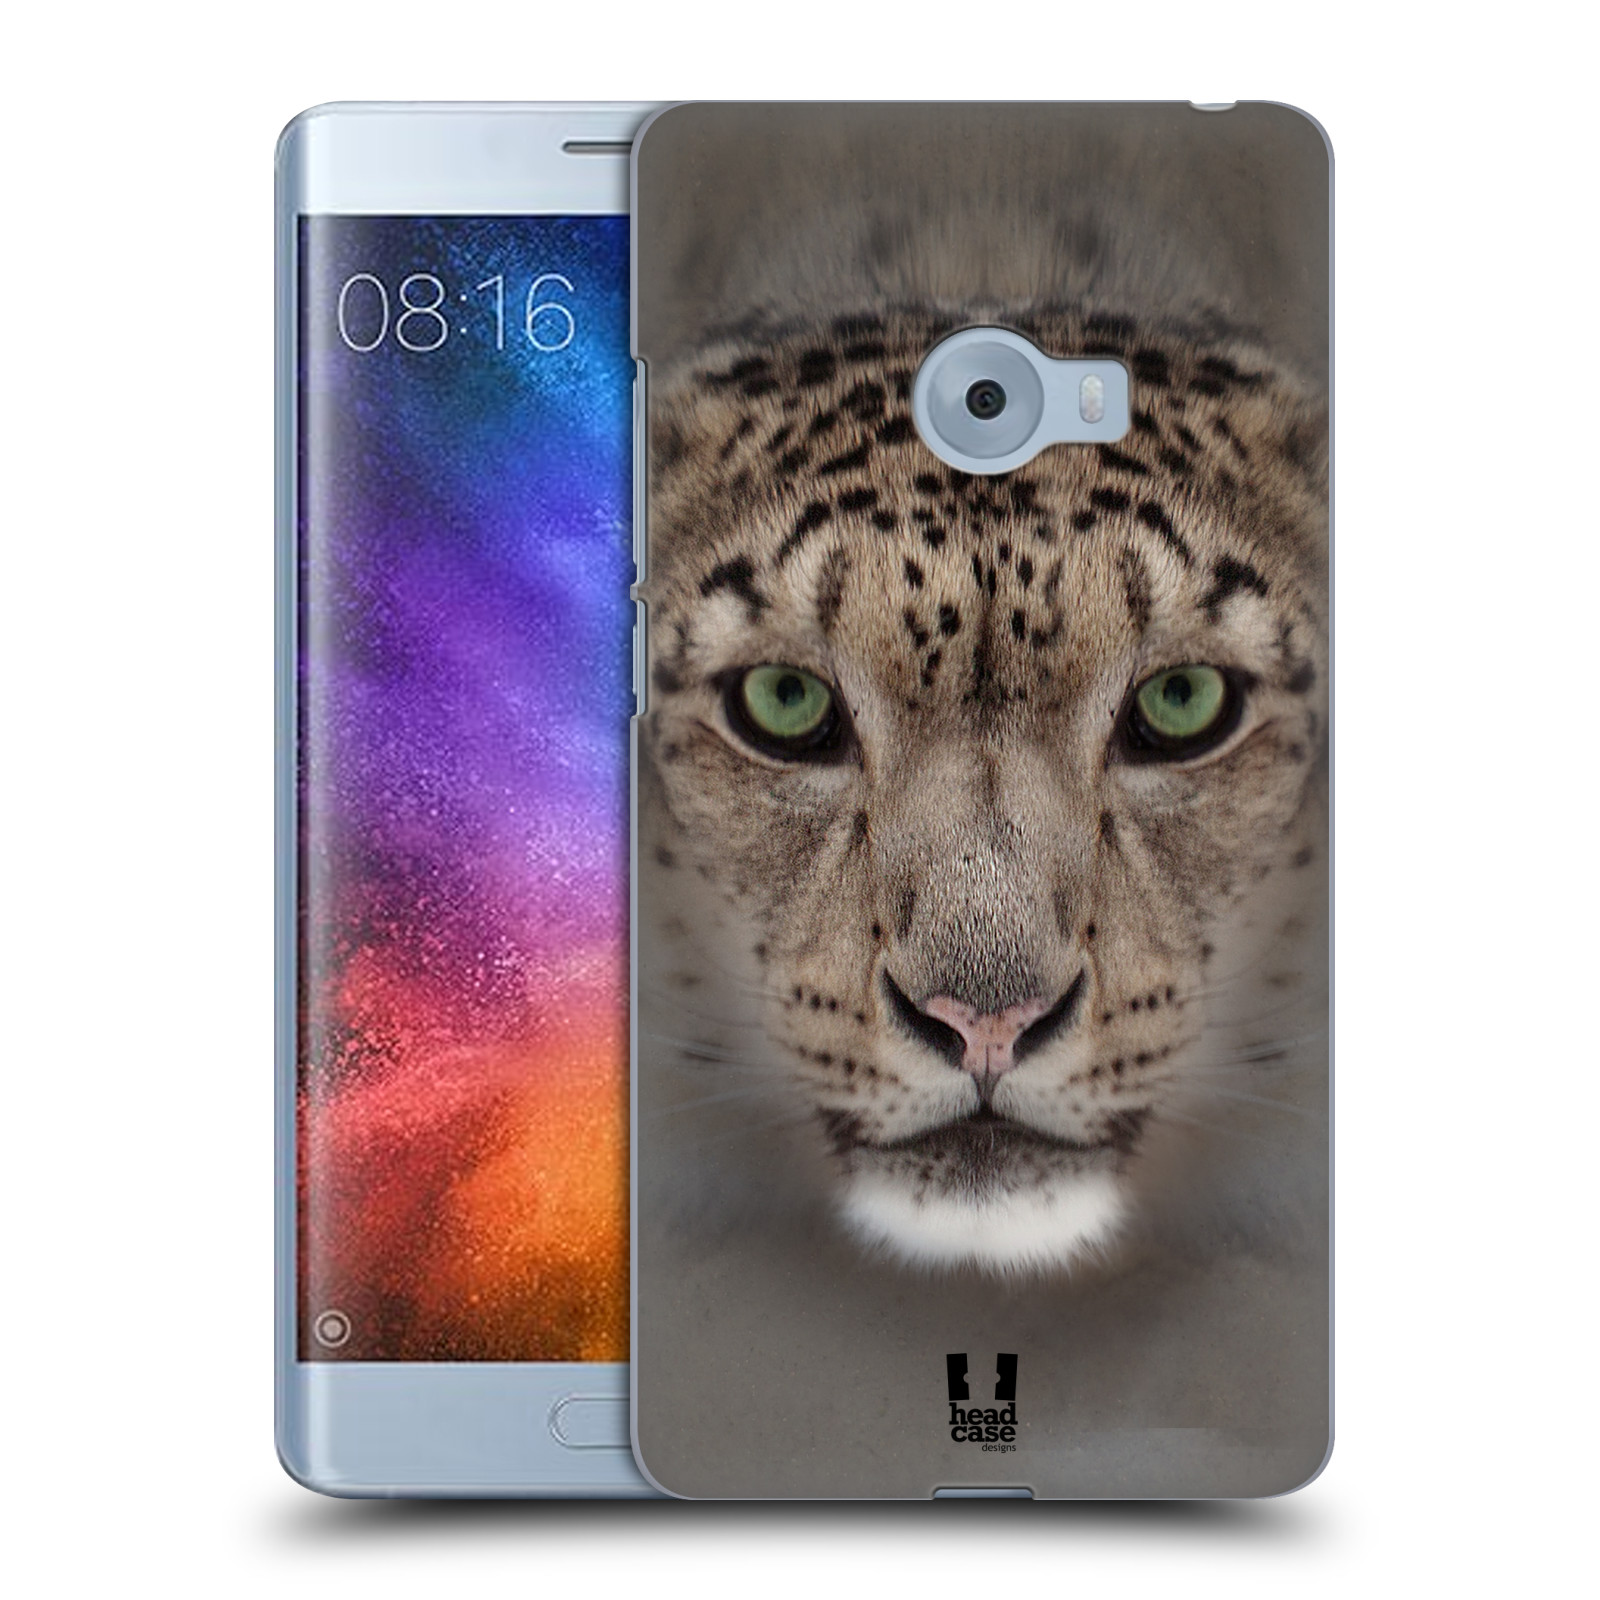 HEAD-CASE-DESIGNS-ANIMAL-FACES-2-HARD-BACK-CASE-FOR-XIAOMI-Mi-NOTE-2